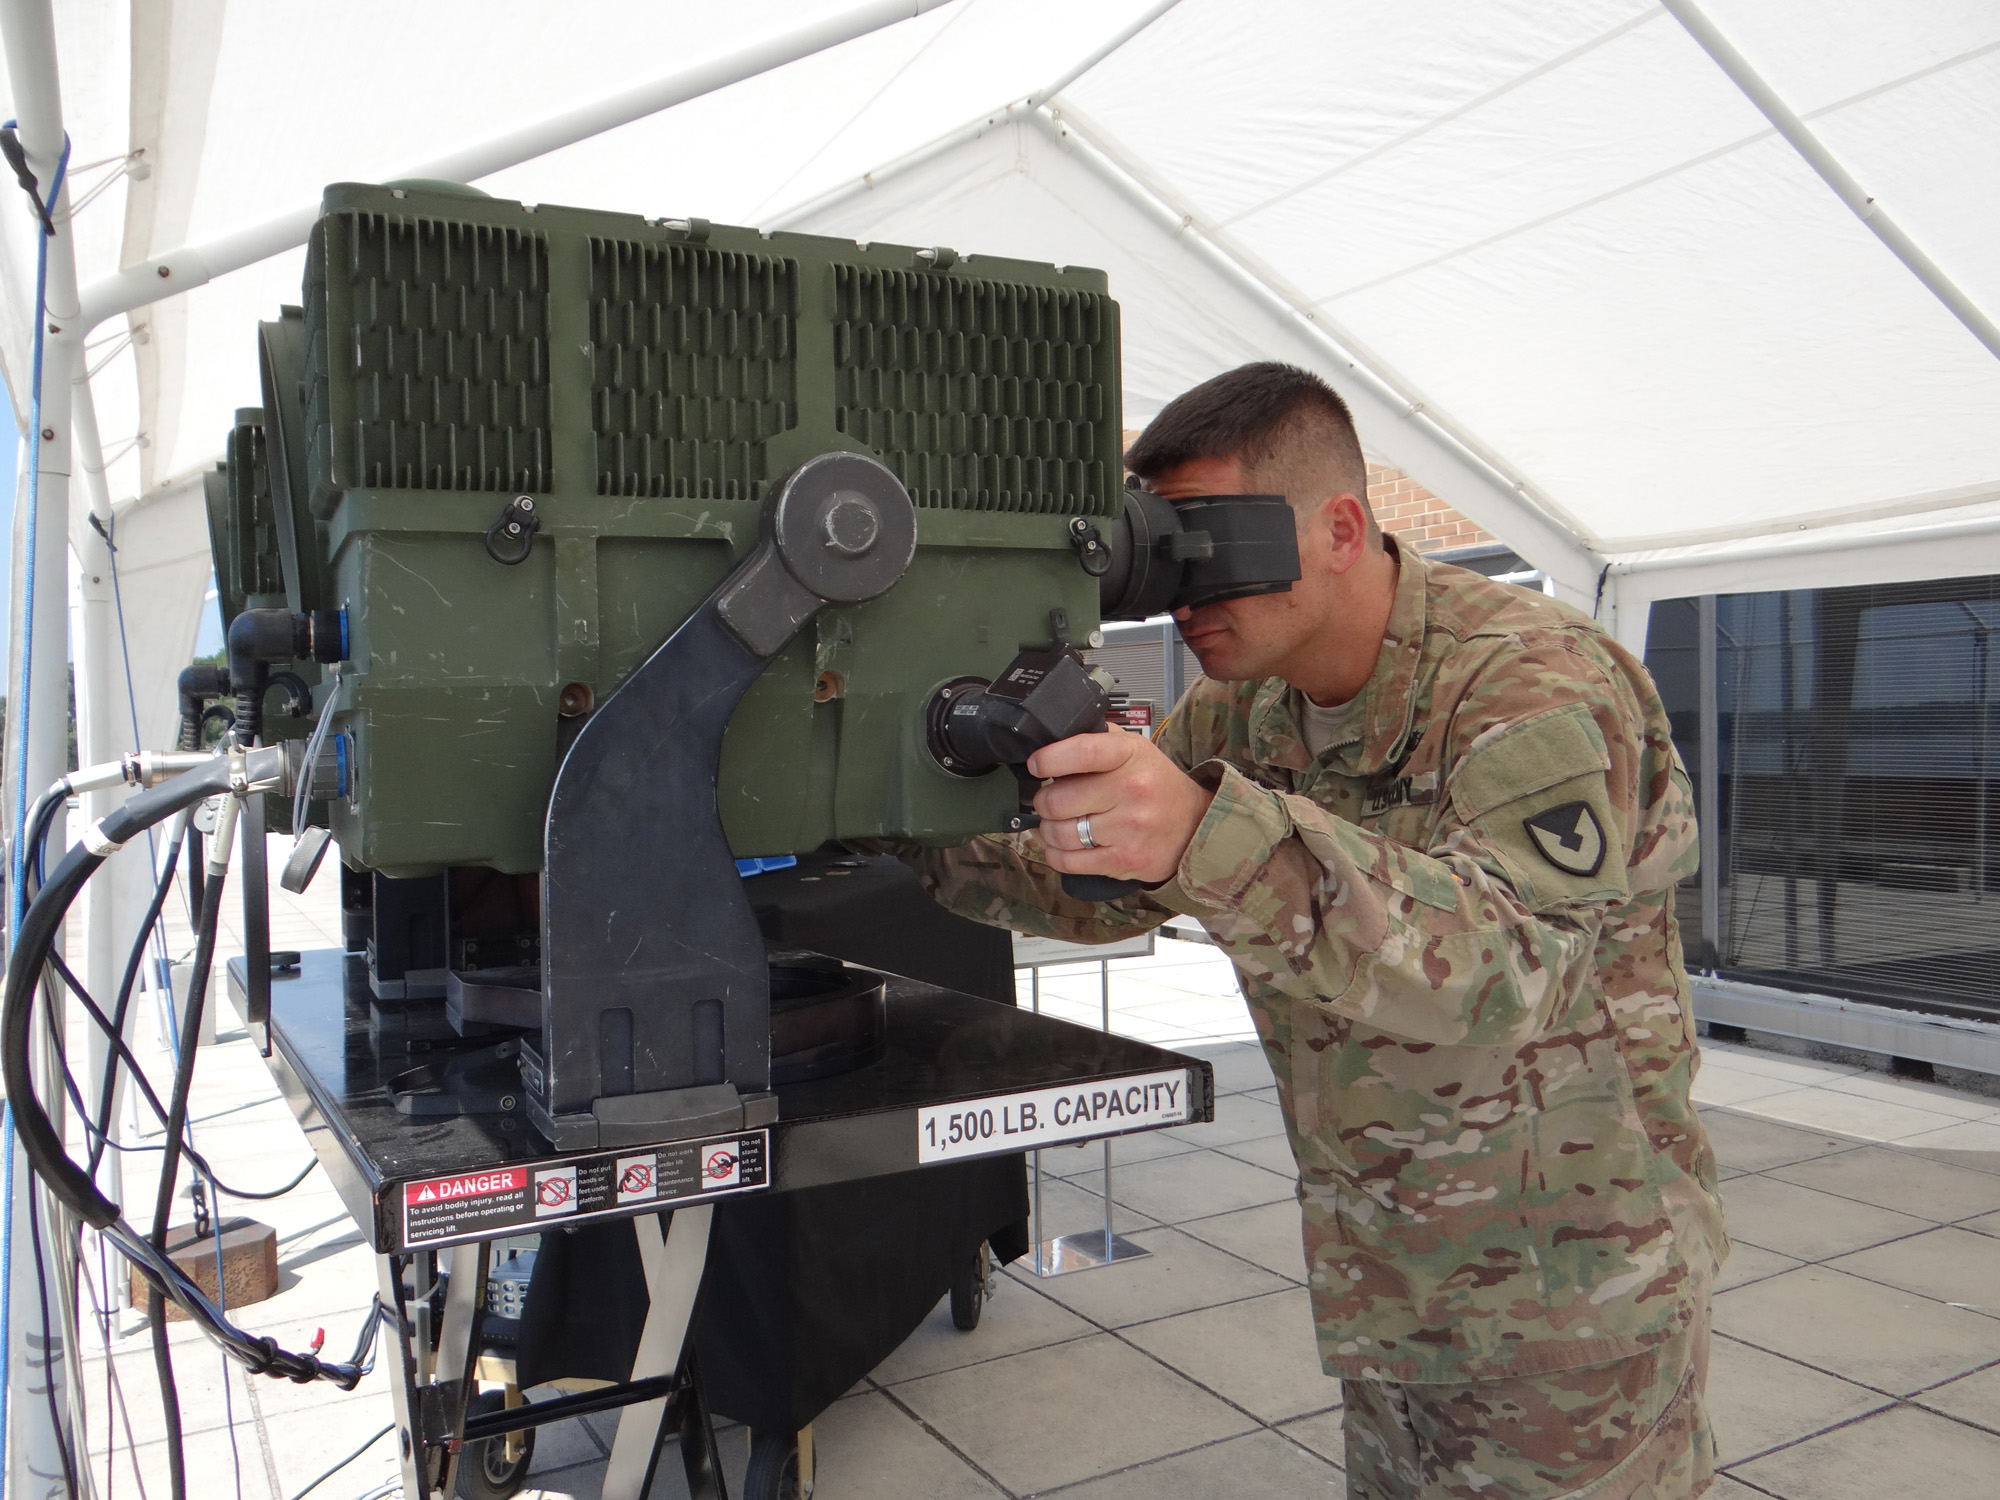 A NEW WAY OF LOOKING DOWNRANGE